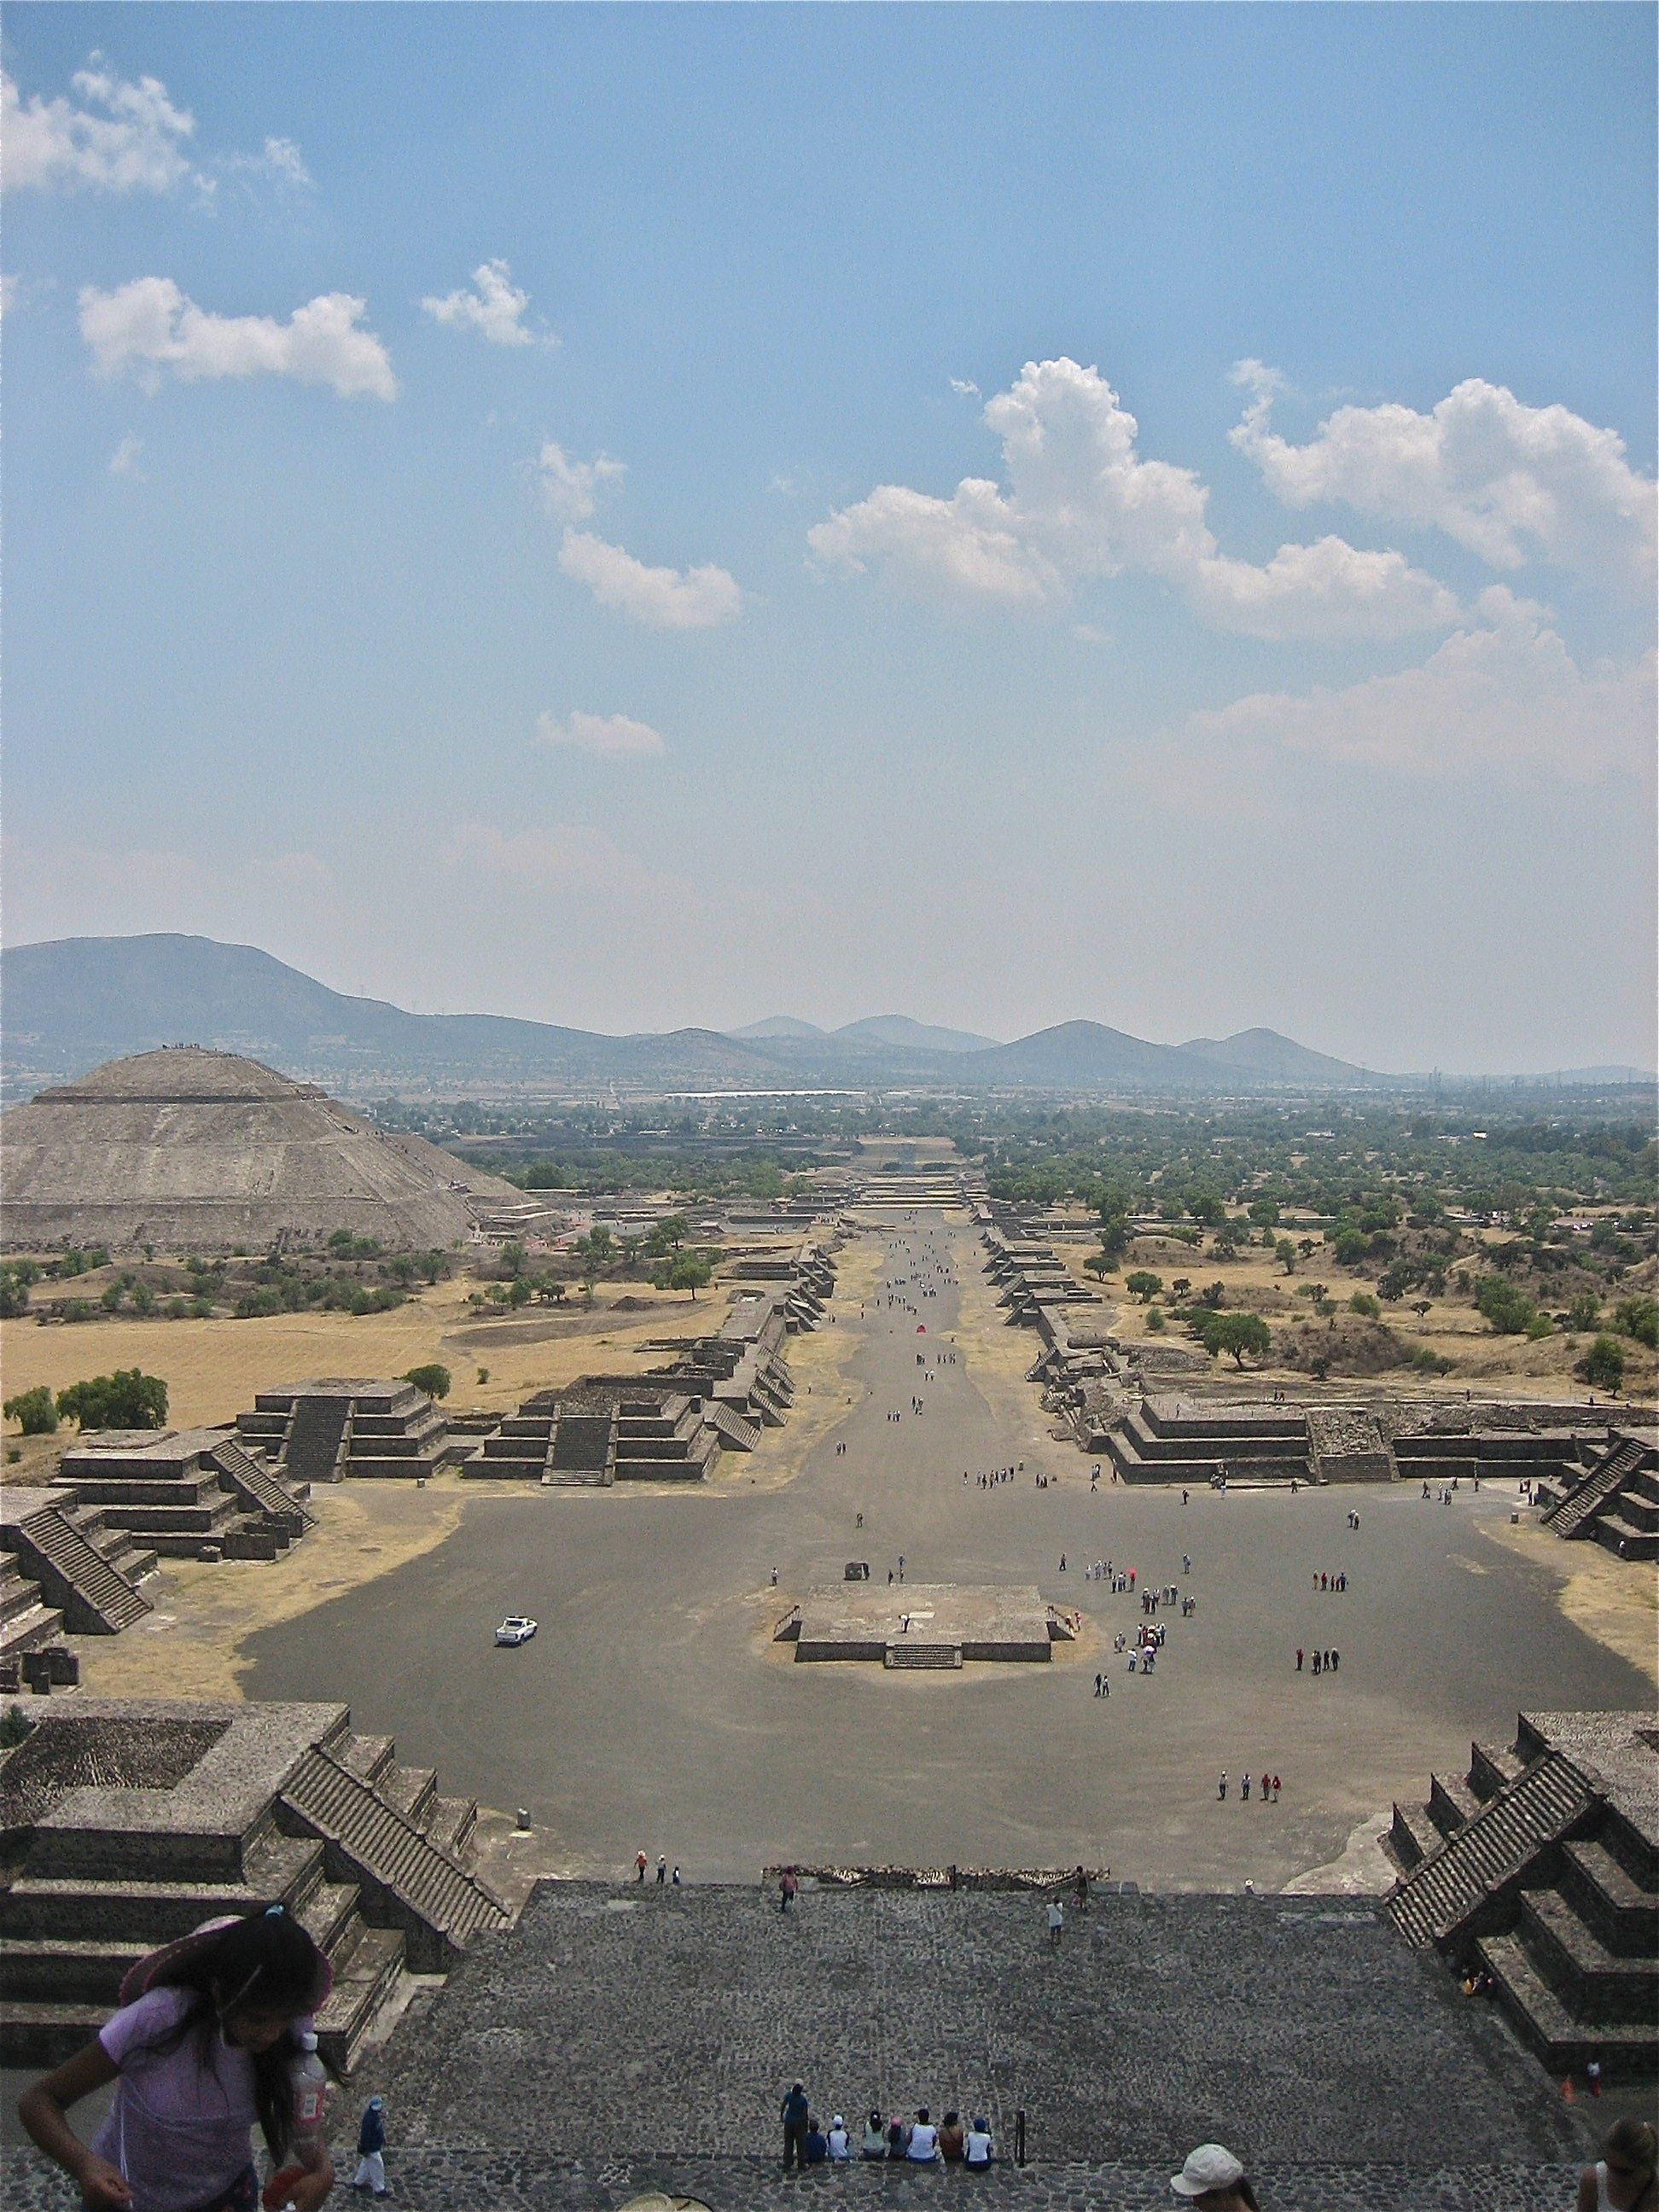 Avenue Of The Dead Amp Pyramid Of The Sun View From Pyramid